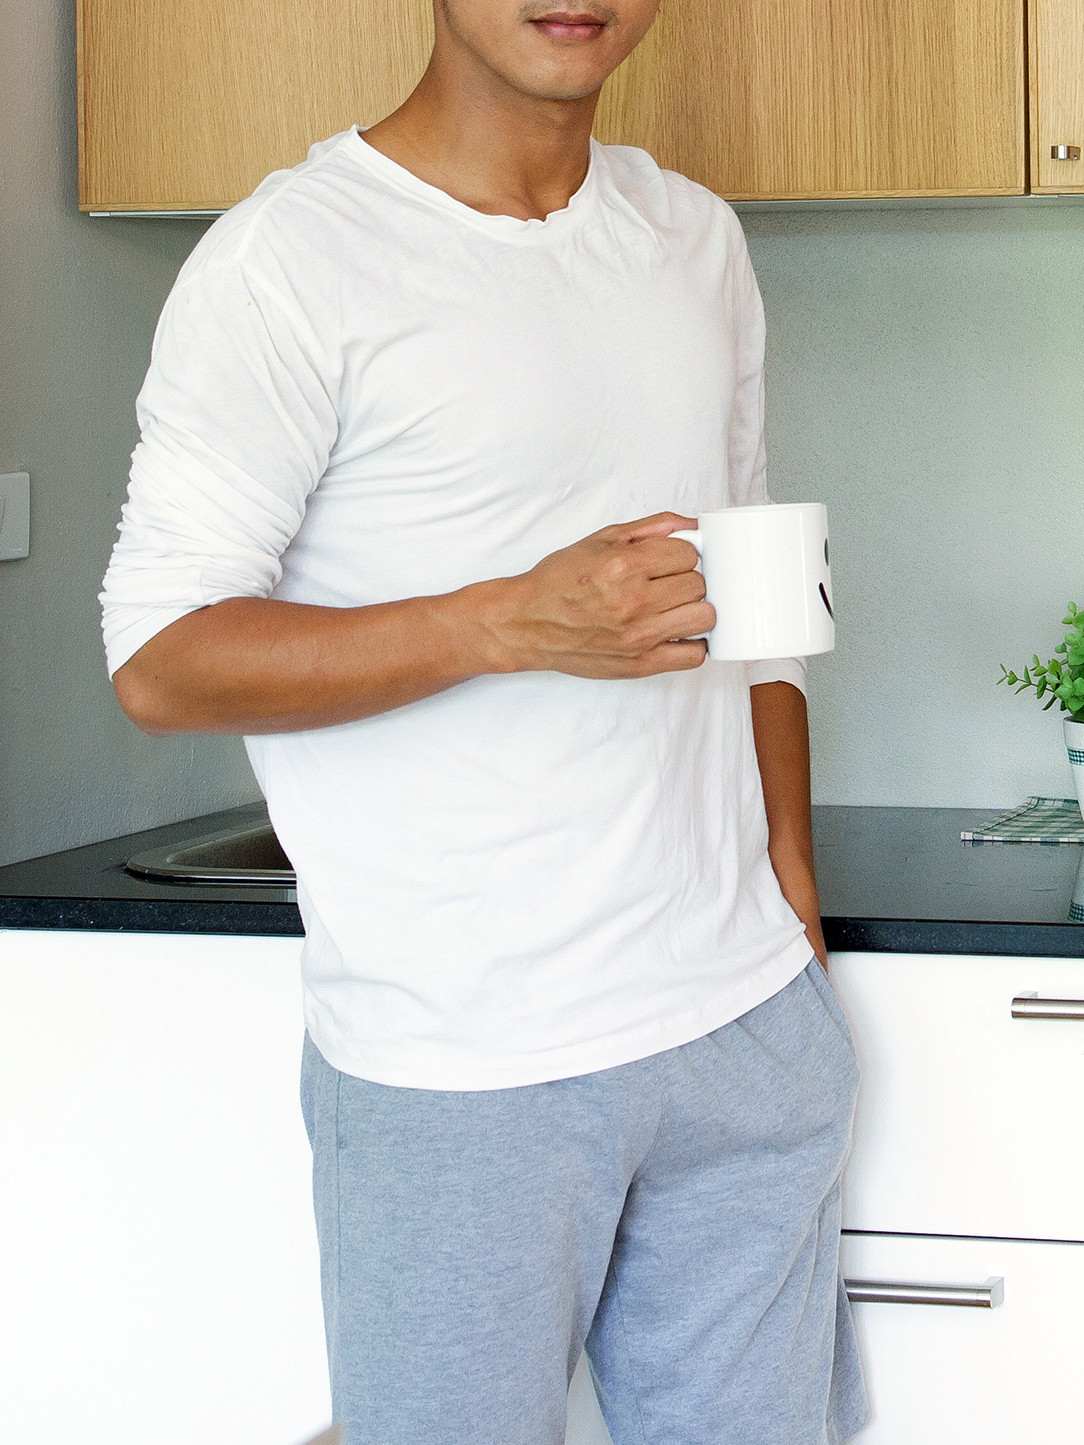 Men's outfit idea for 2021 with blue plain hoodie, white plain long-sleeved t-shirt, grey sweatpants. Suitable for spring, summer, fall and winter.